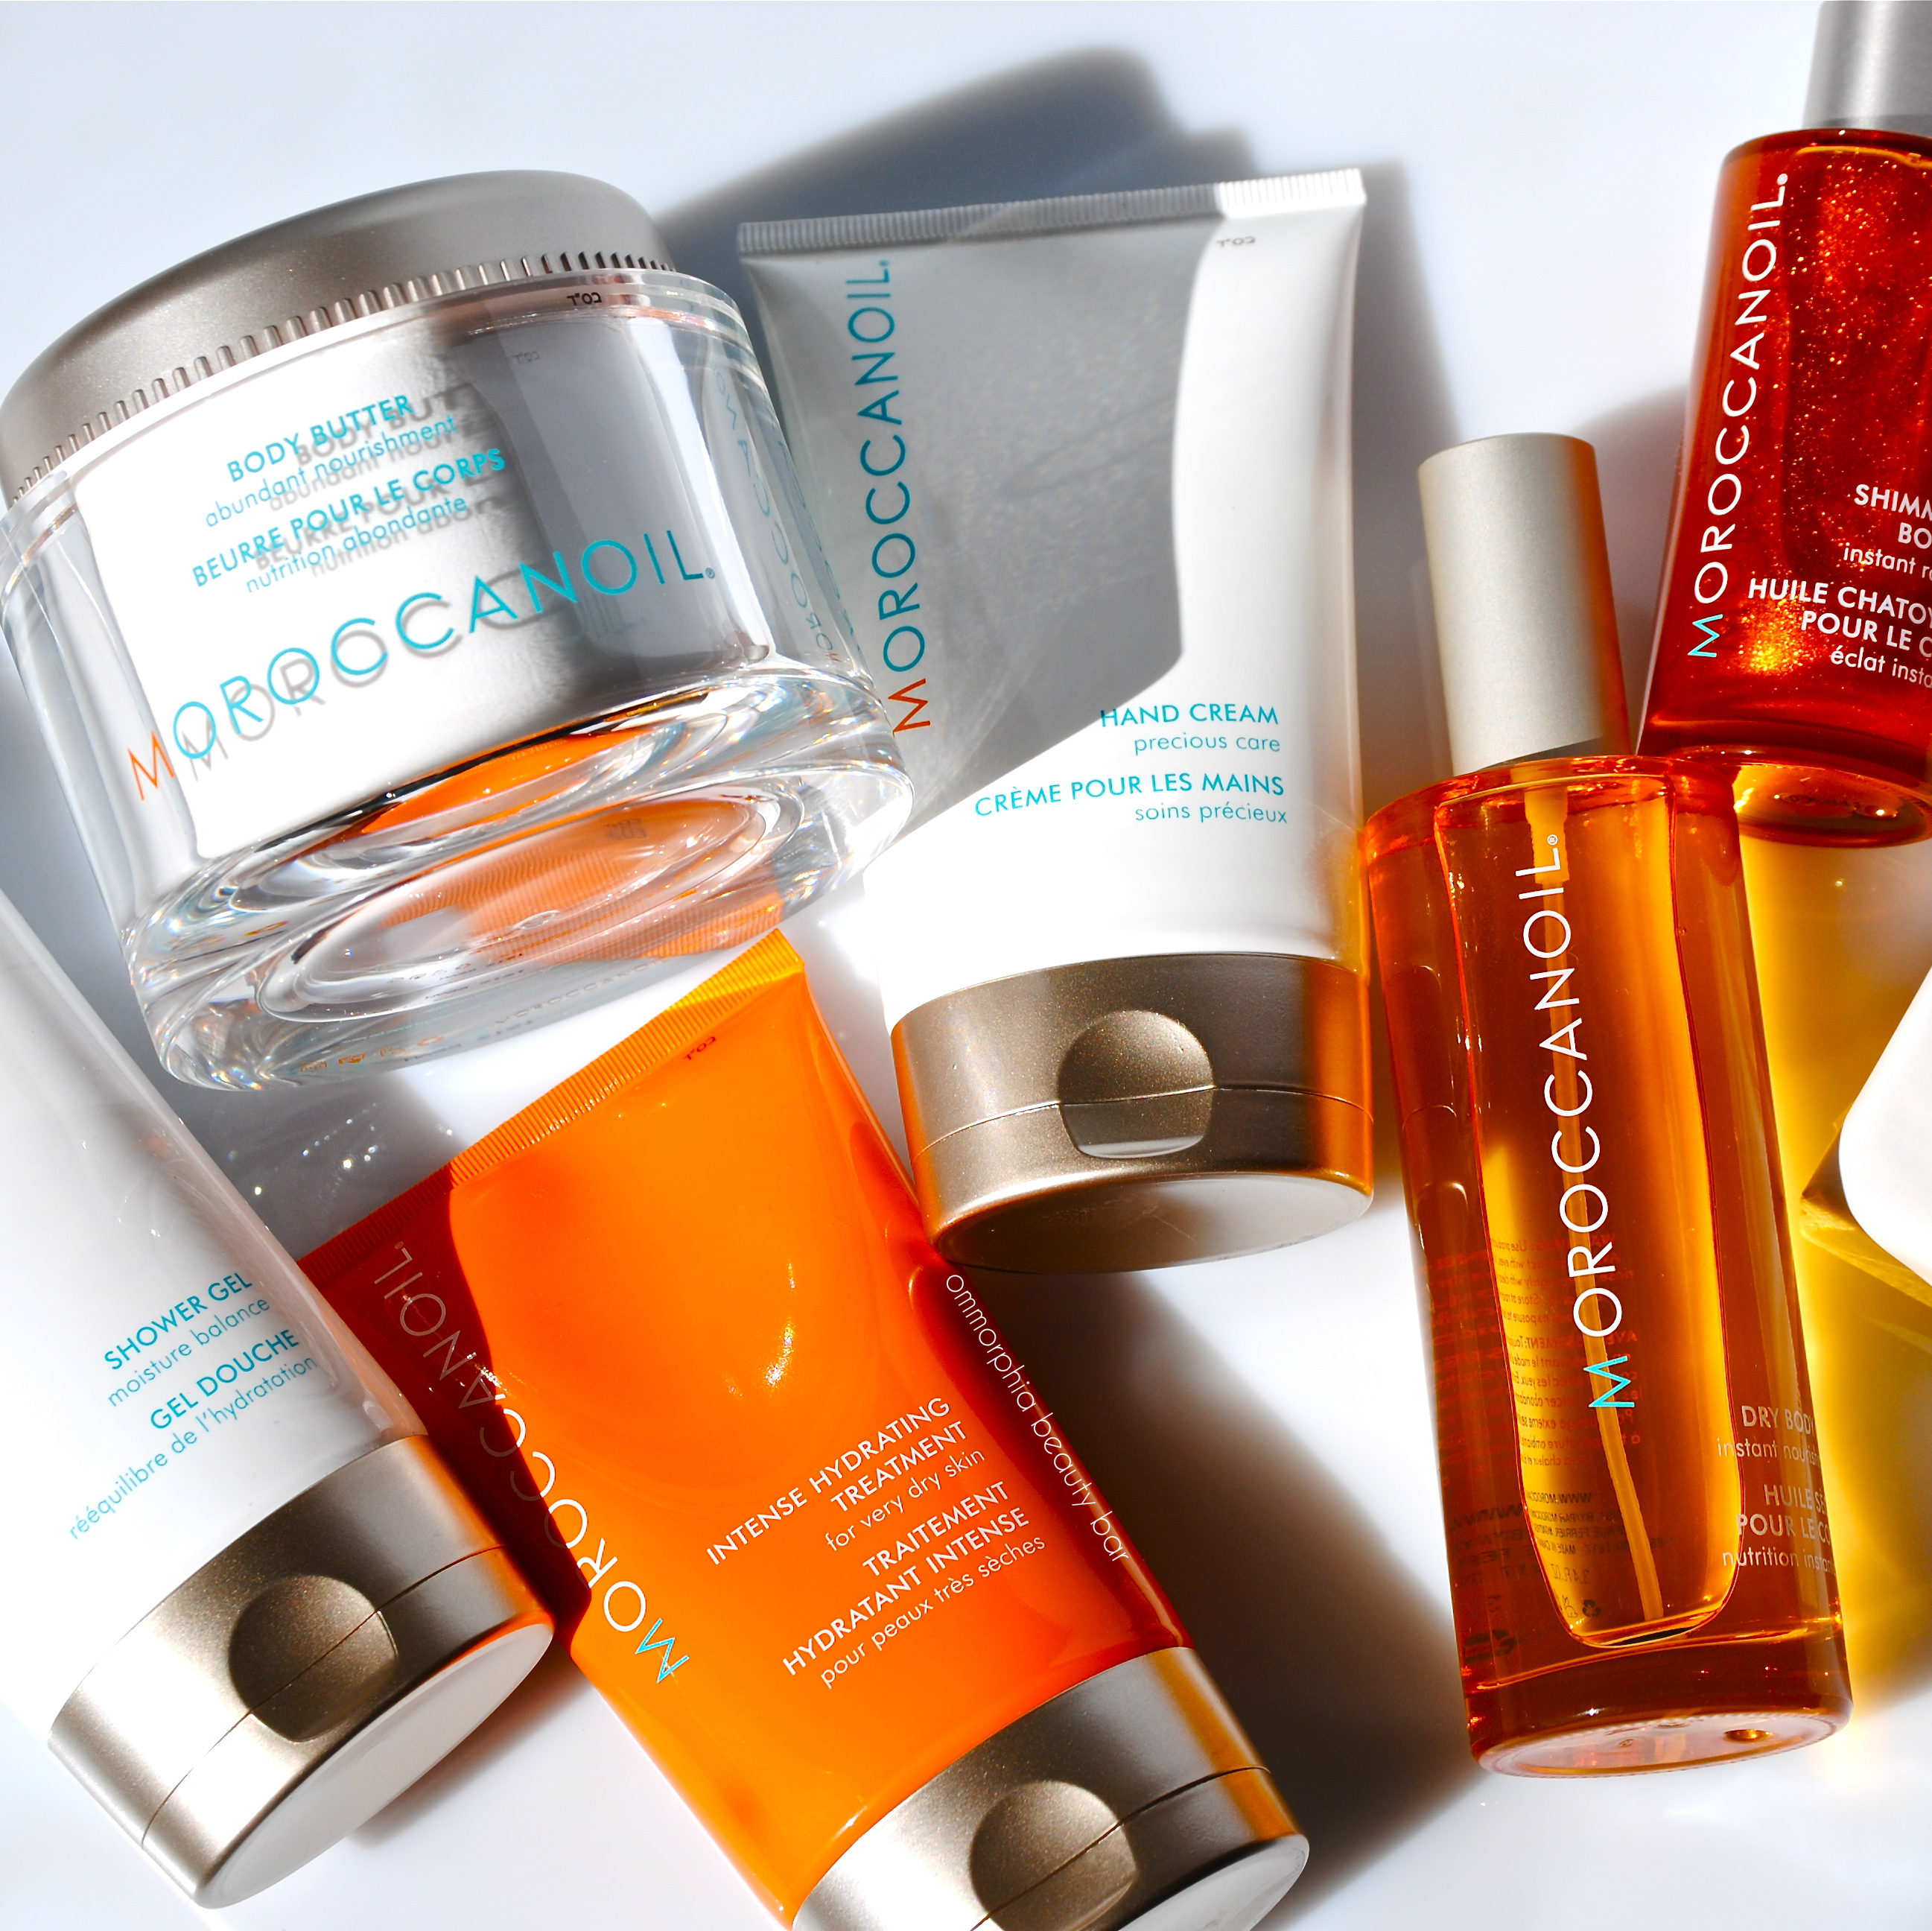 Moroccanoil Body Skin Products